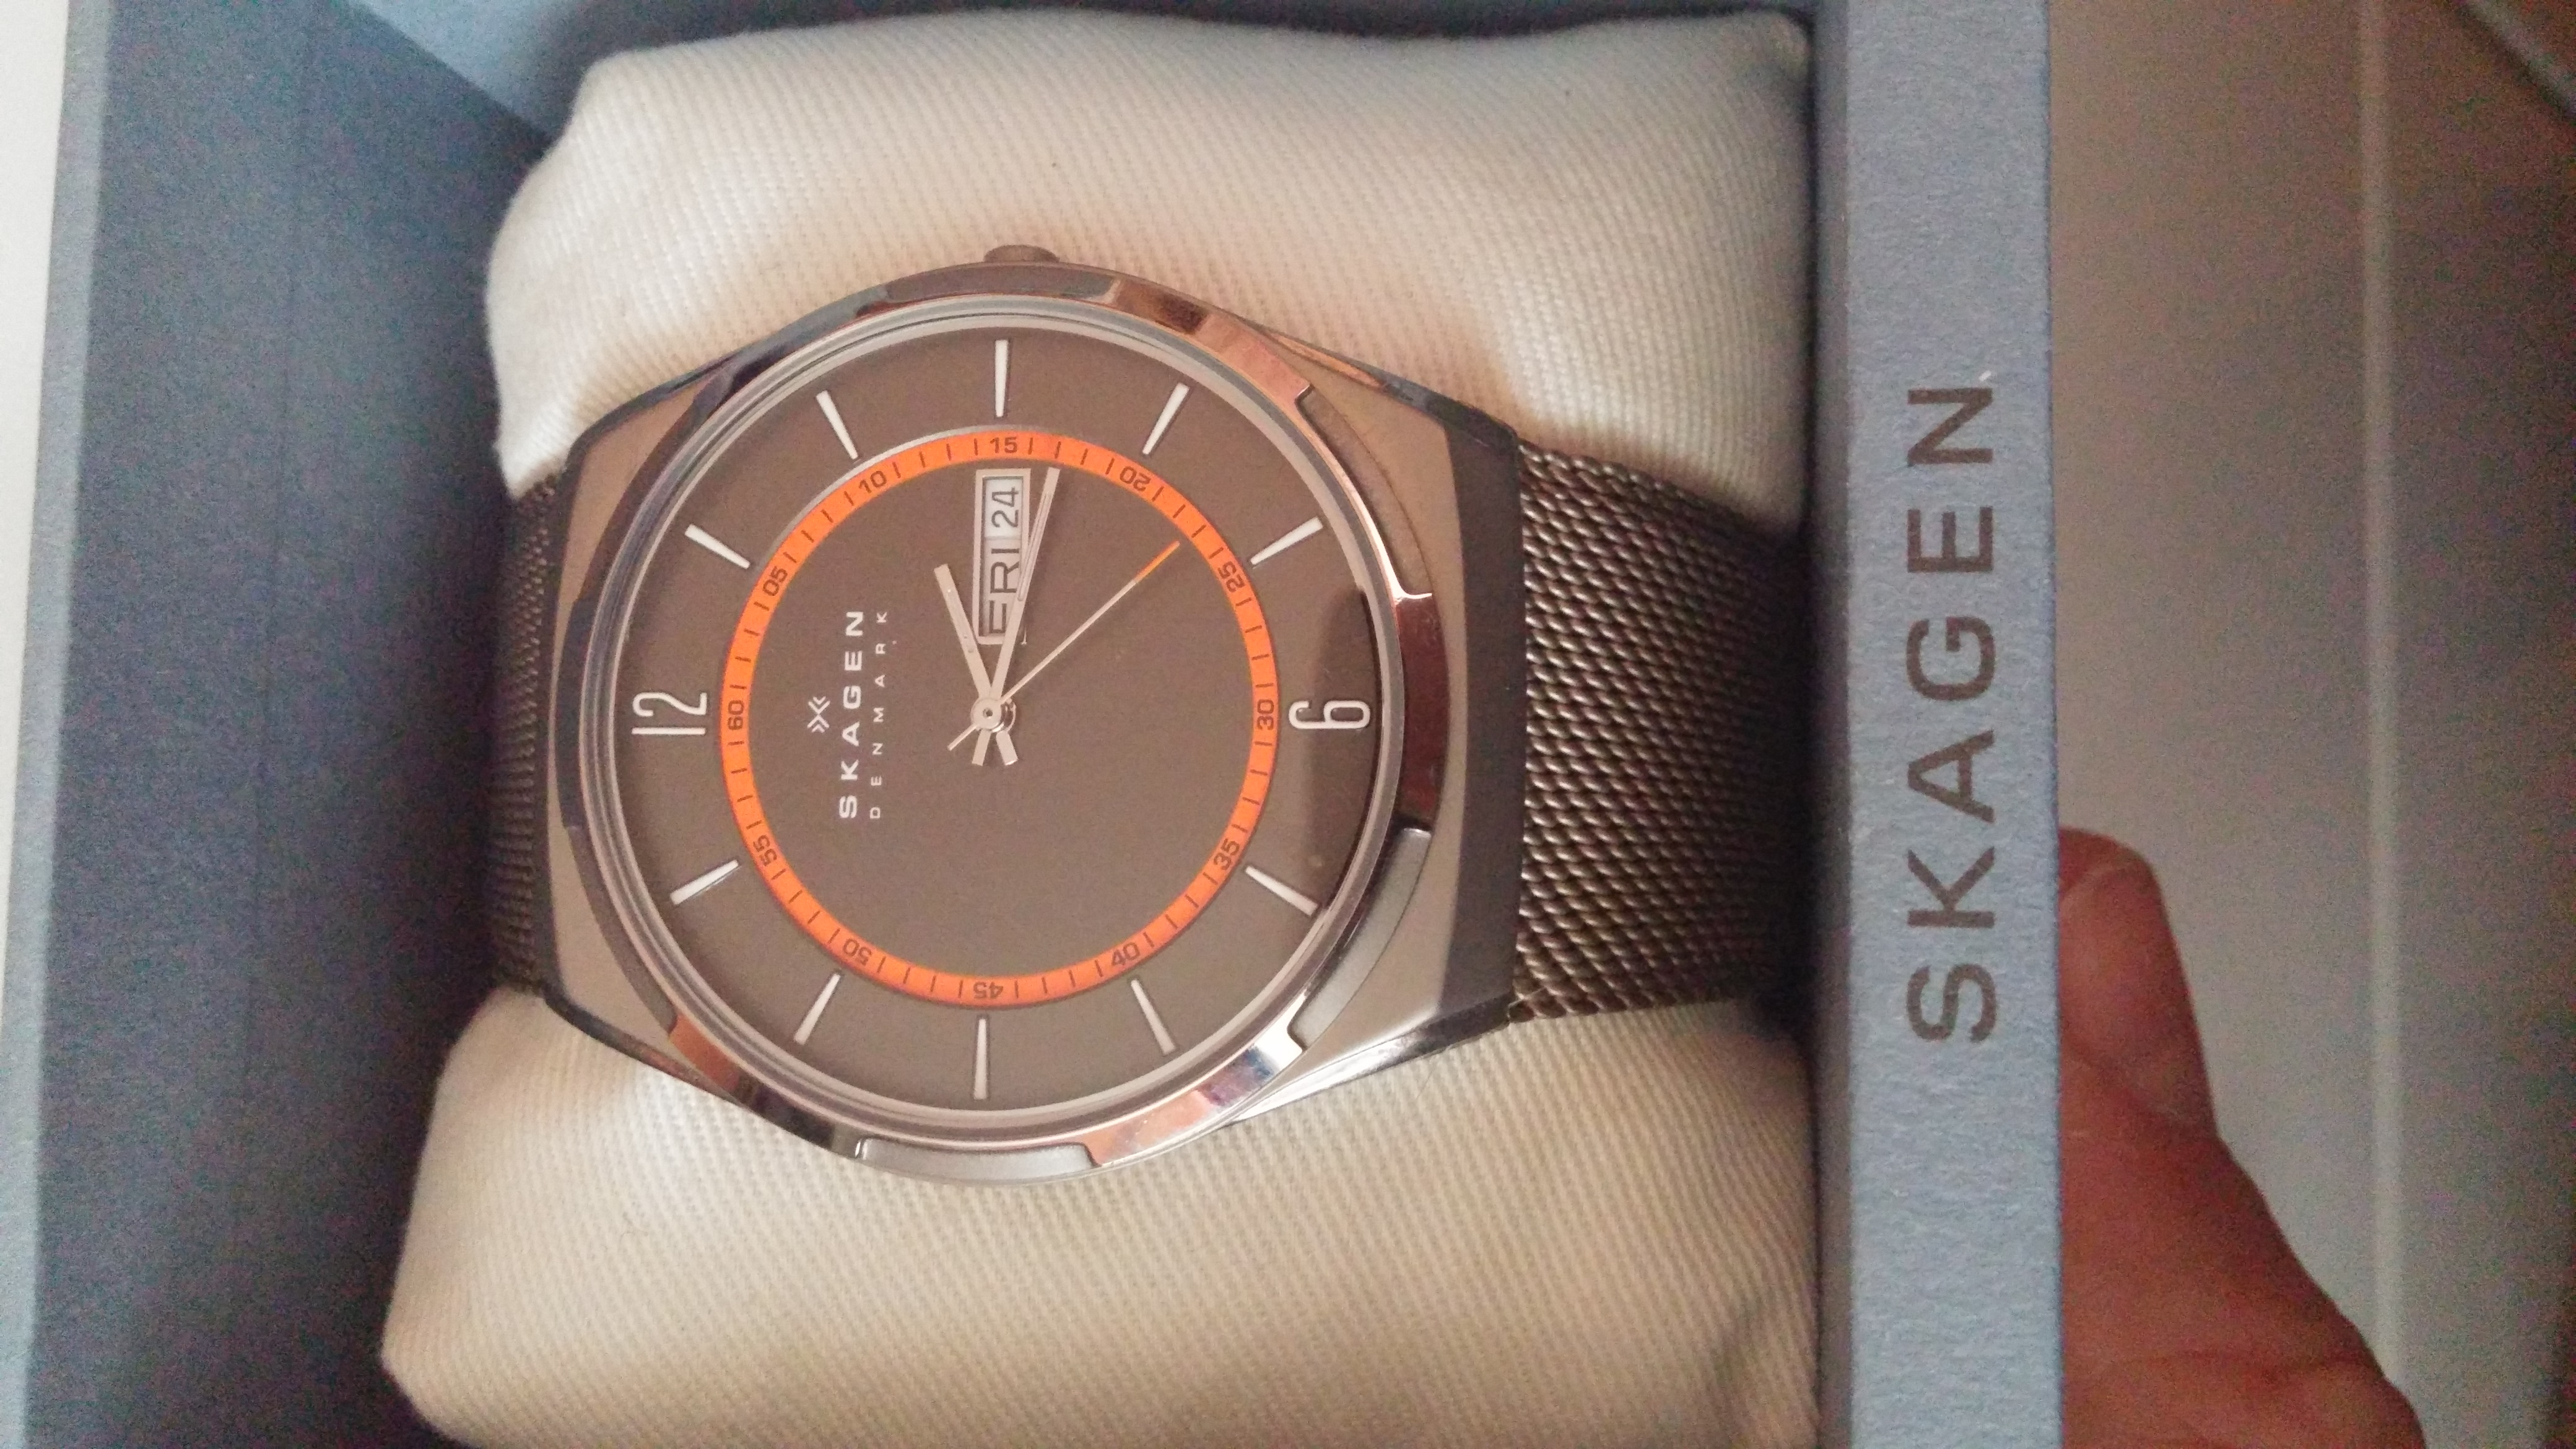 eae6d0a75b Gents Skagen Melbye Watch (SKW6007) | WatchShop.com™